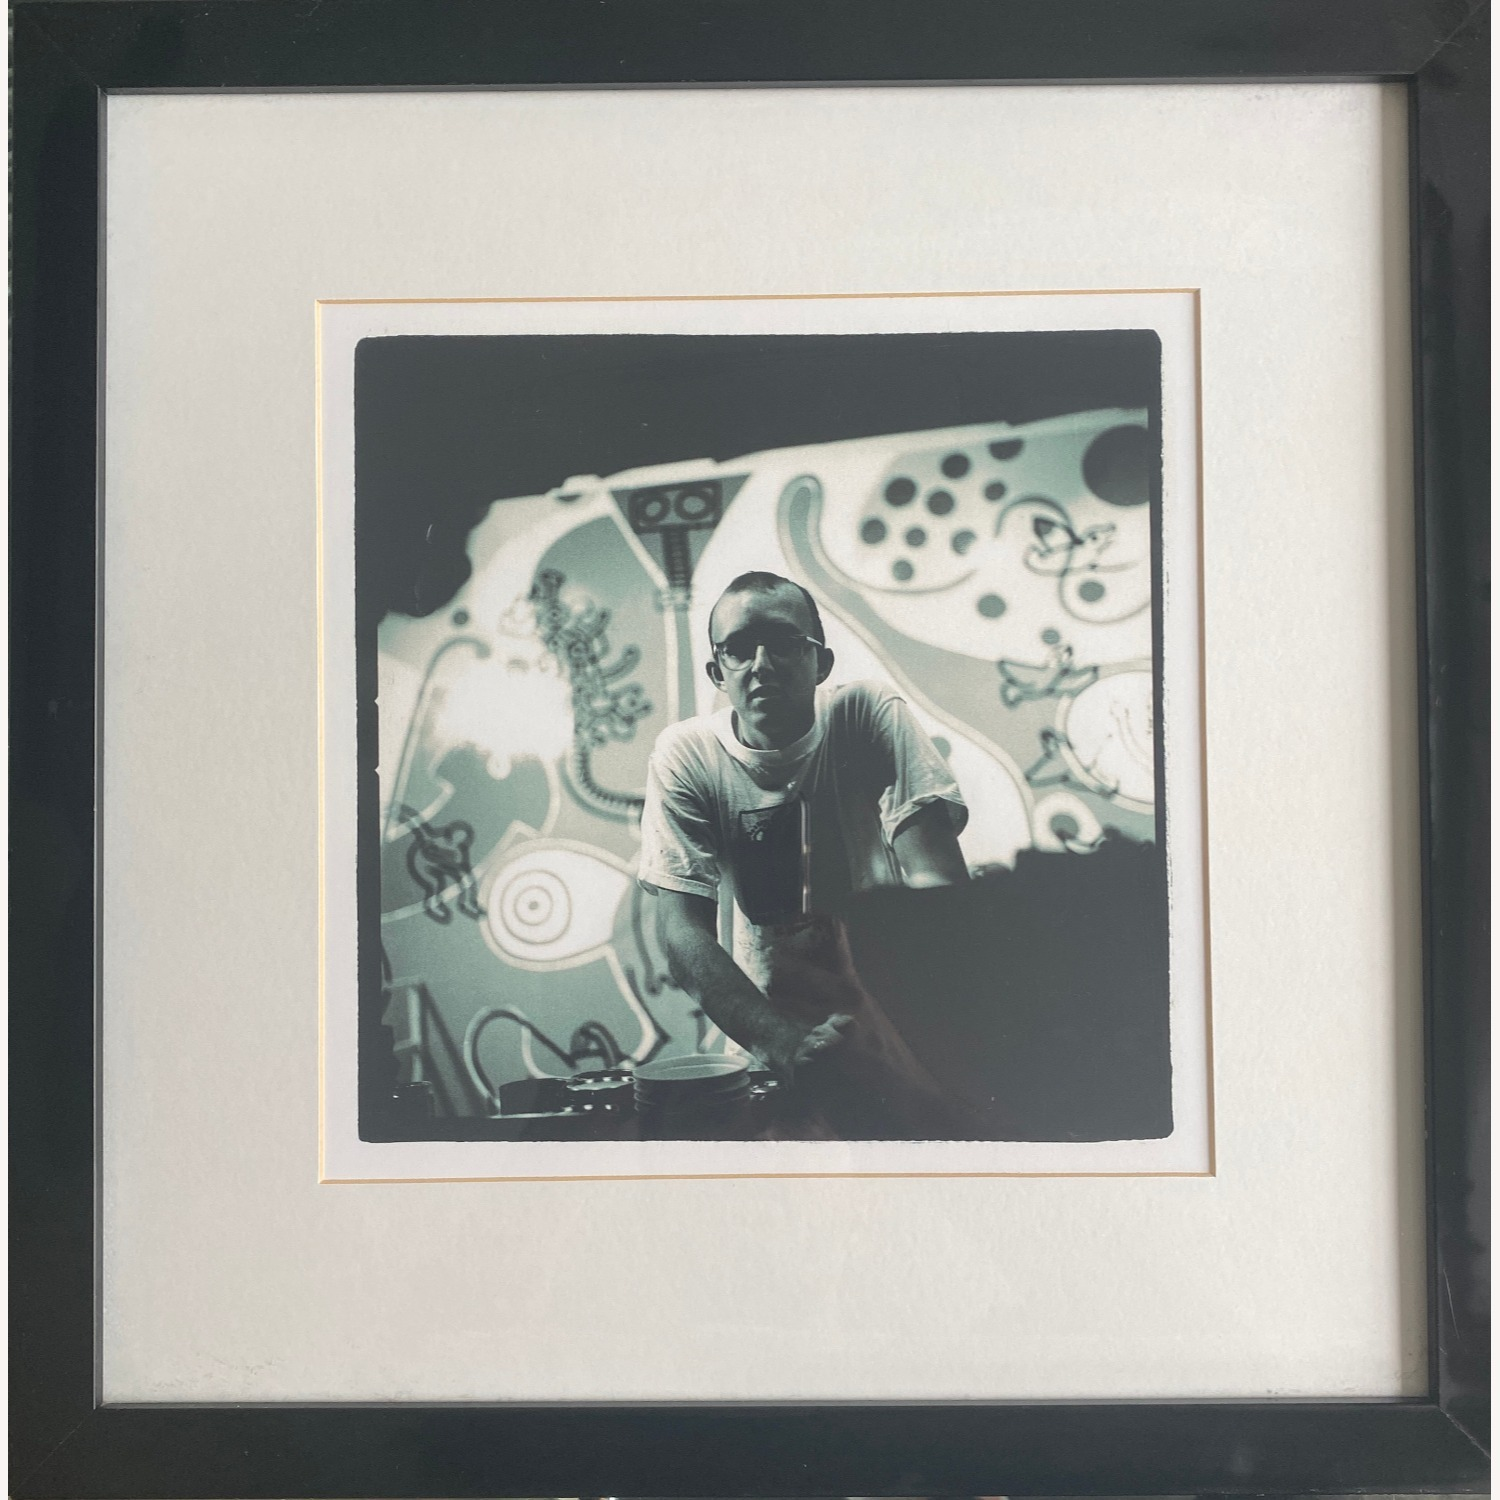 Limited Edition Keith Haring Framed Portrait - image-1